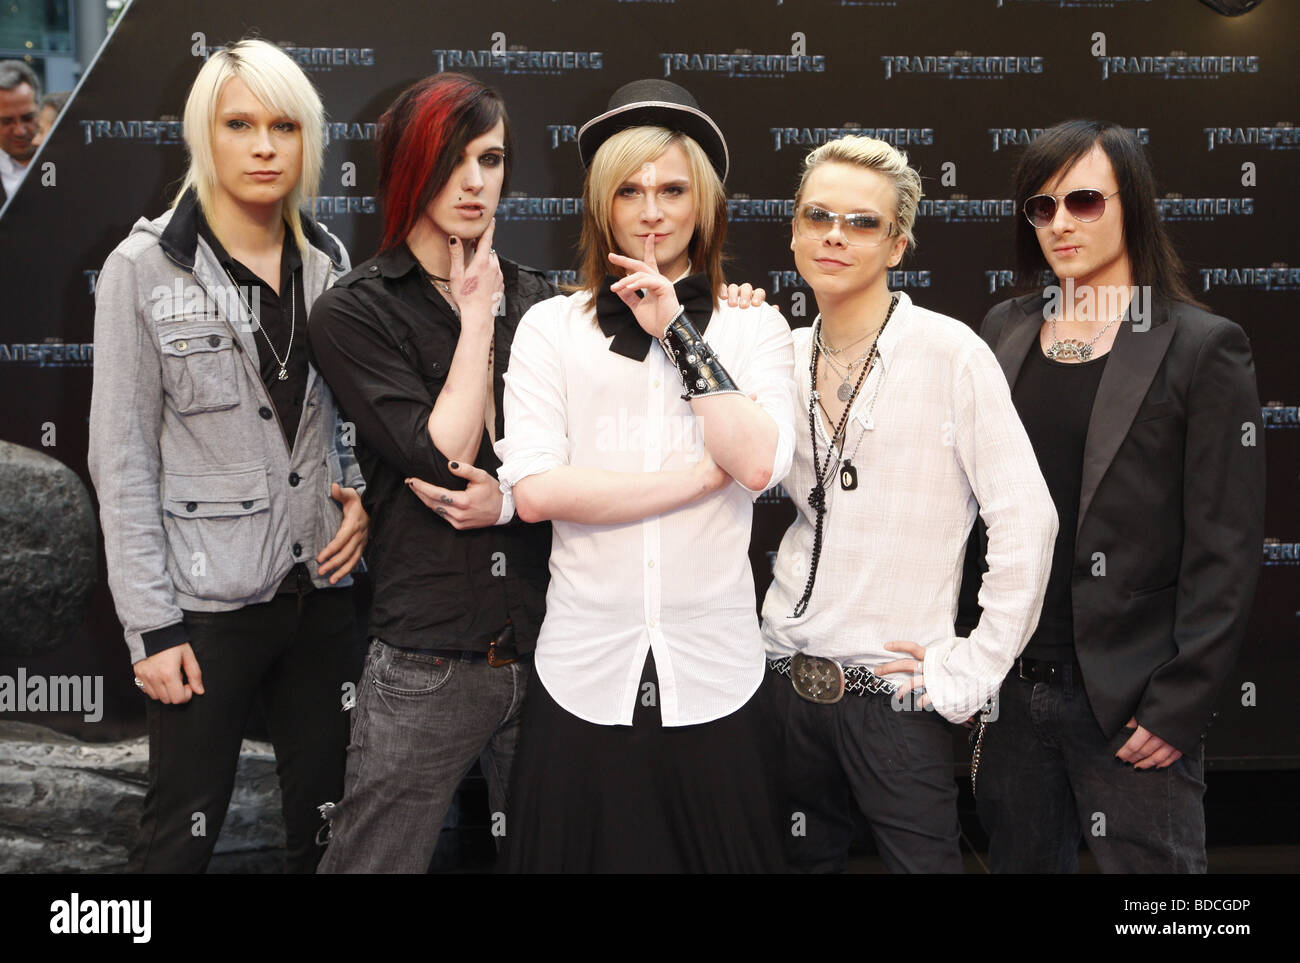 Cinema Bizarre, German music band, group picture, during film Stock Photo -  Alamy